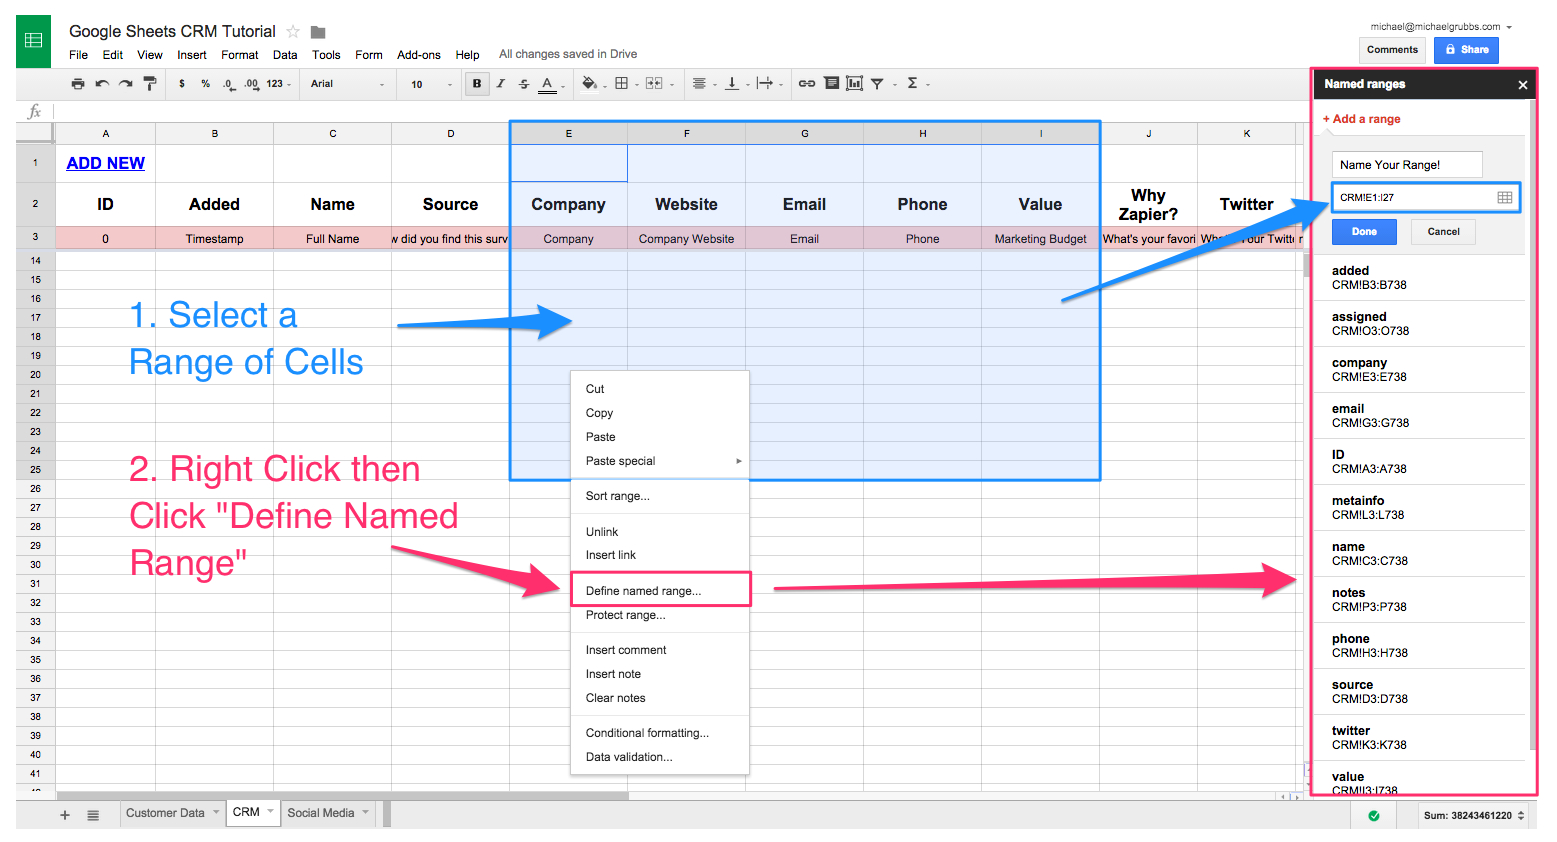 Simple Crm Spreadsheet For Spreadsheet Crm: How To Create A Customizable Crm With Google Sheets